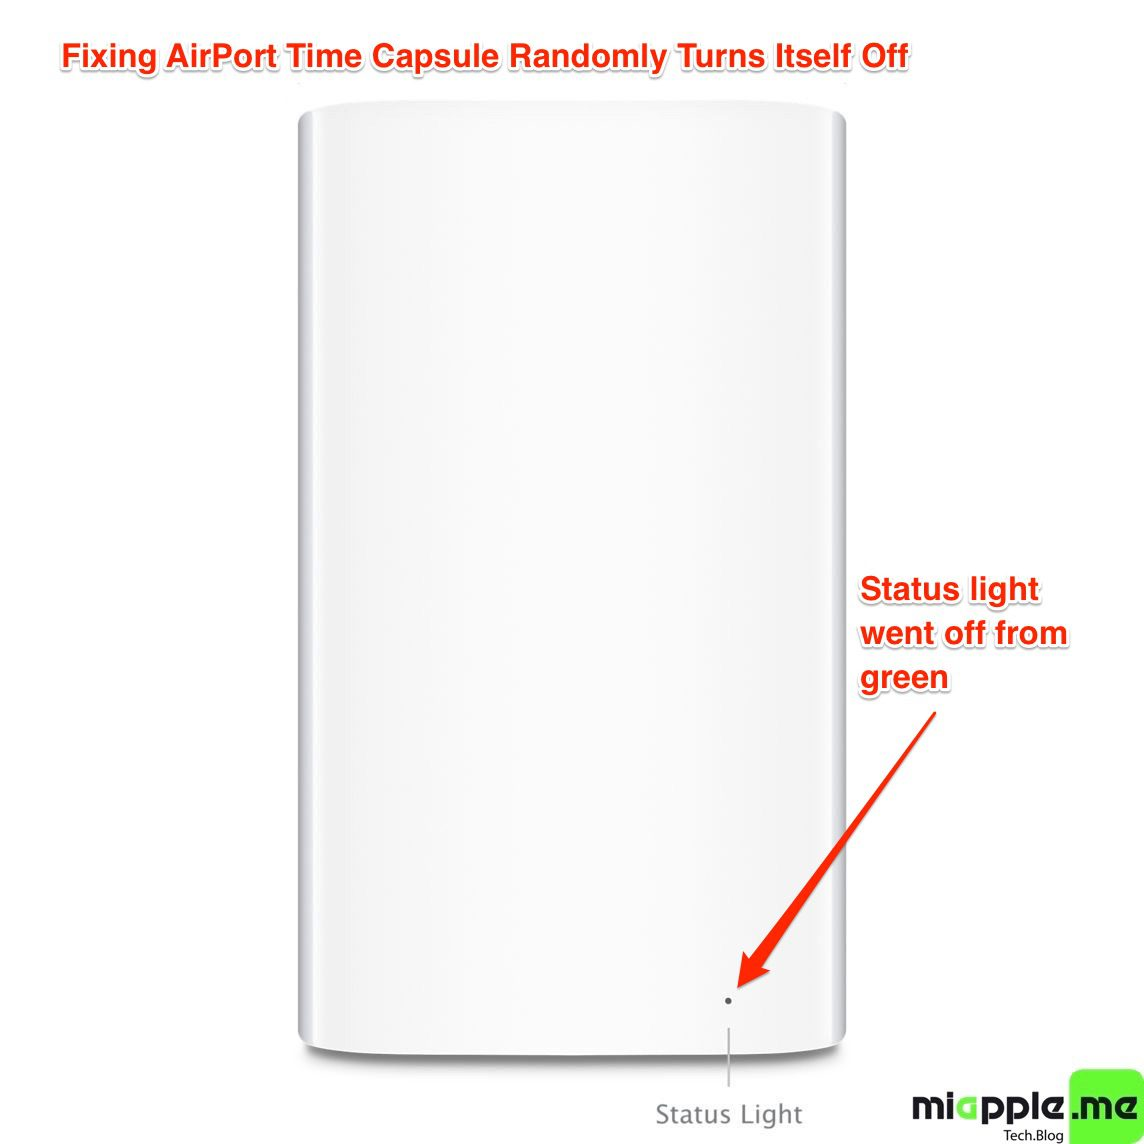 Fixing AirPort Time Capsule Randomly Turns Itself Off